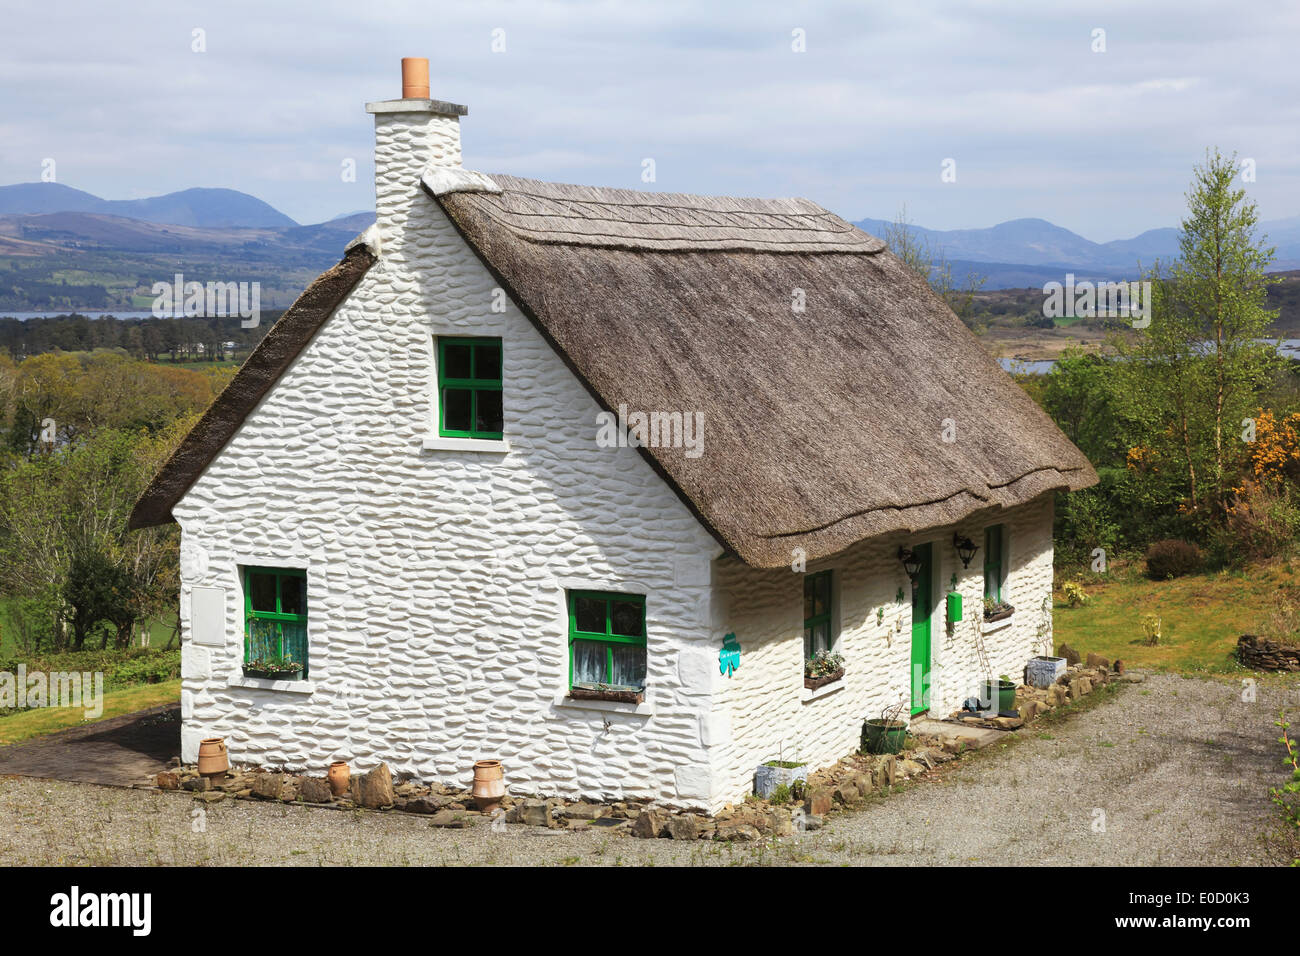 A white house with green door and trim and a thatched roof for White house green trim